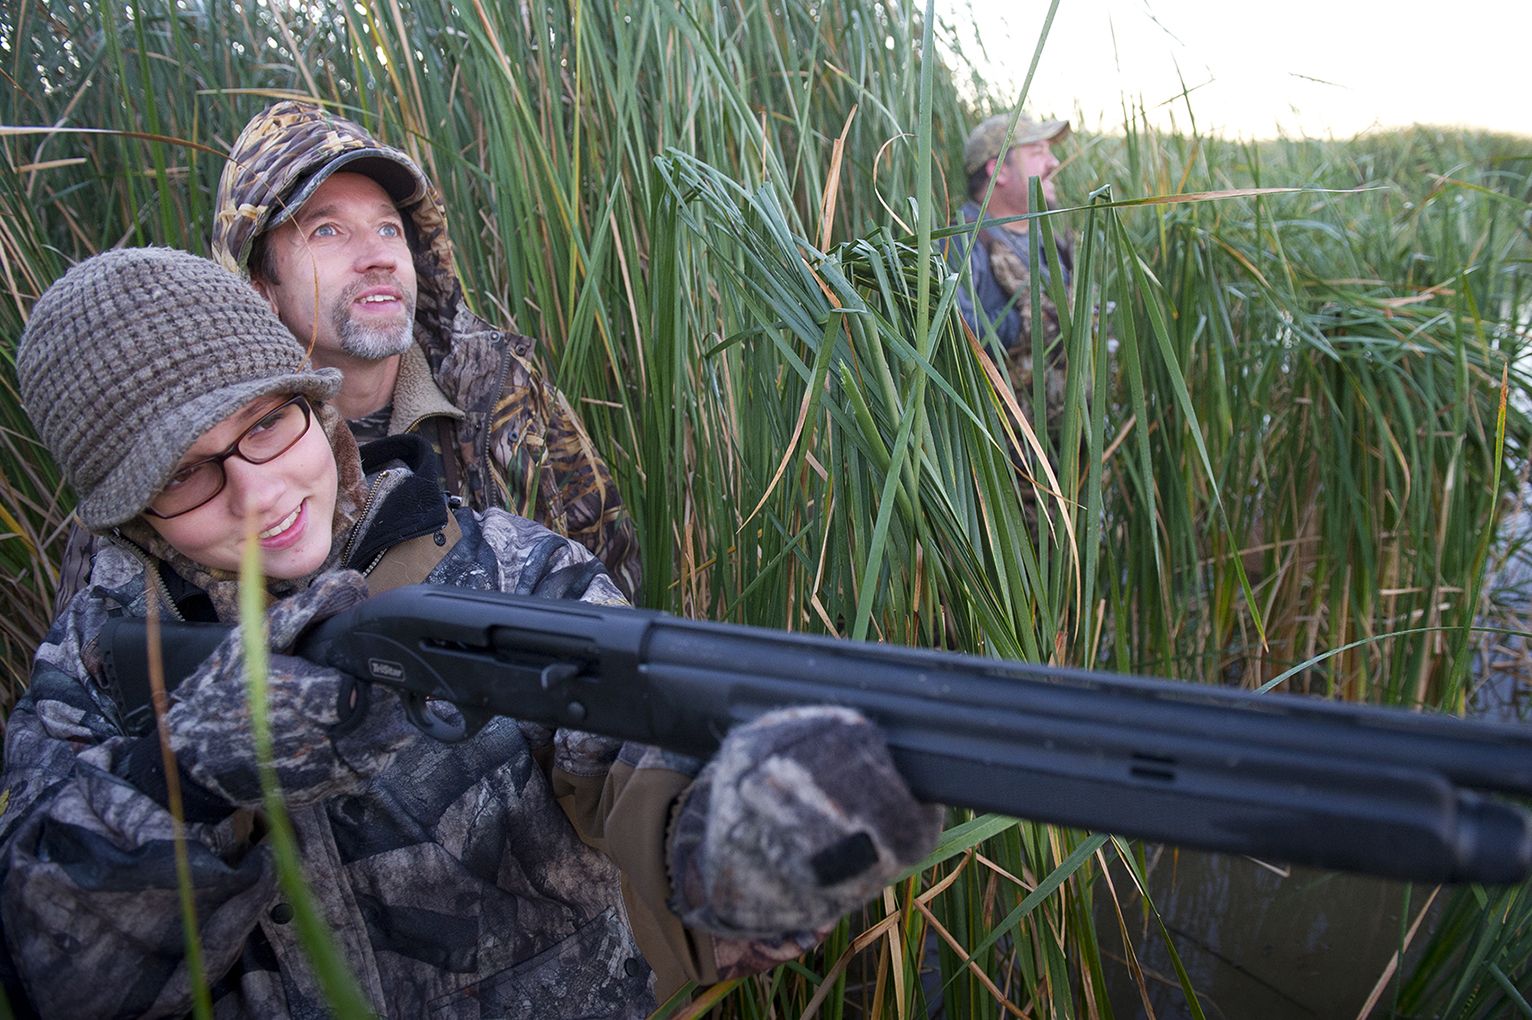 Waterfowl hunting trips, which take place largely in wetland areas, generate $22 million each year in Michigan.